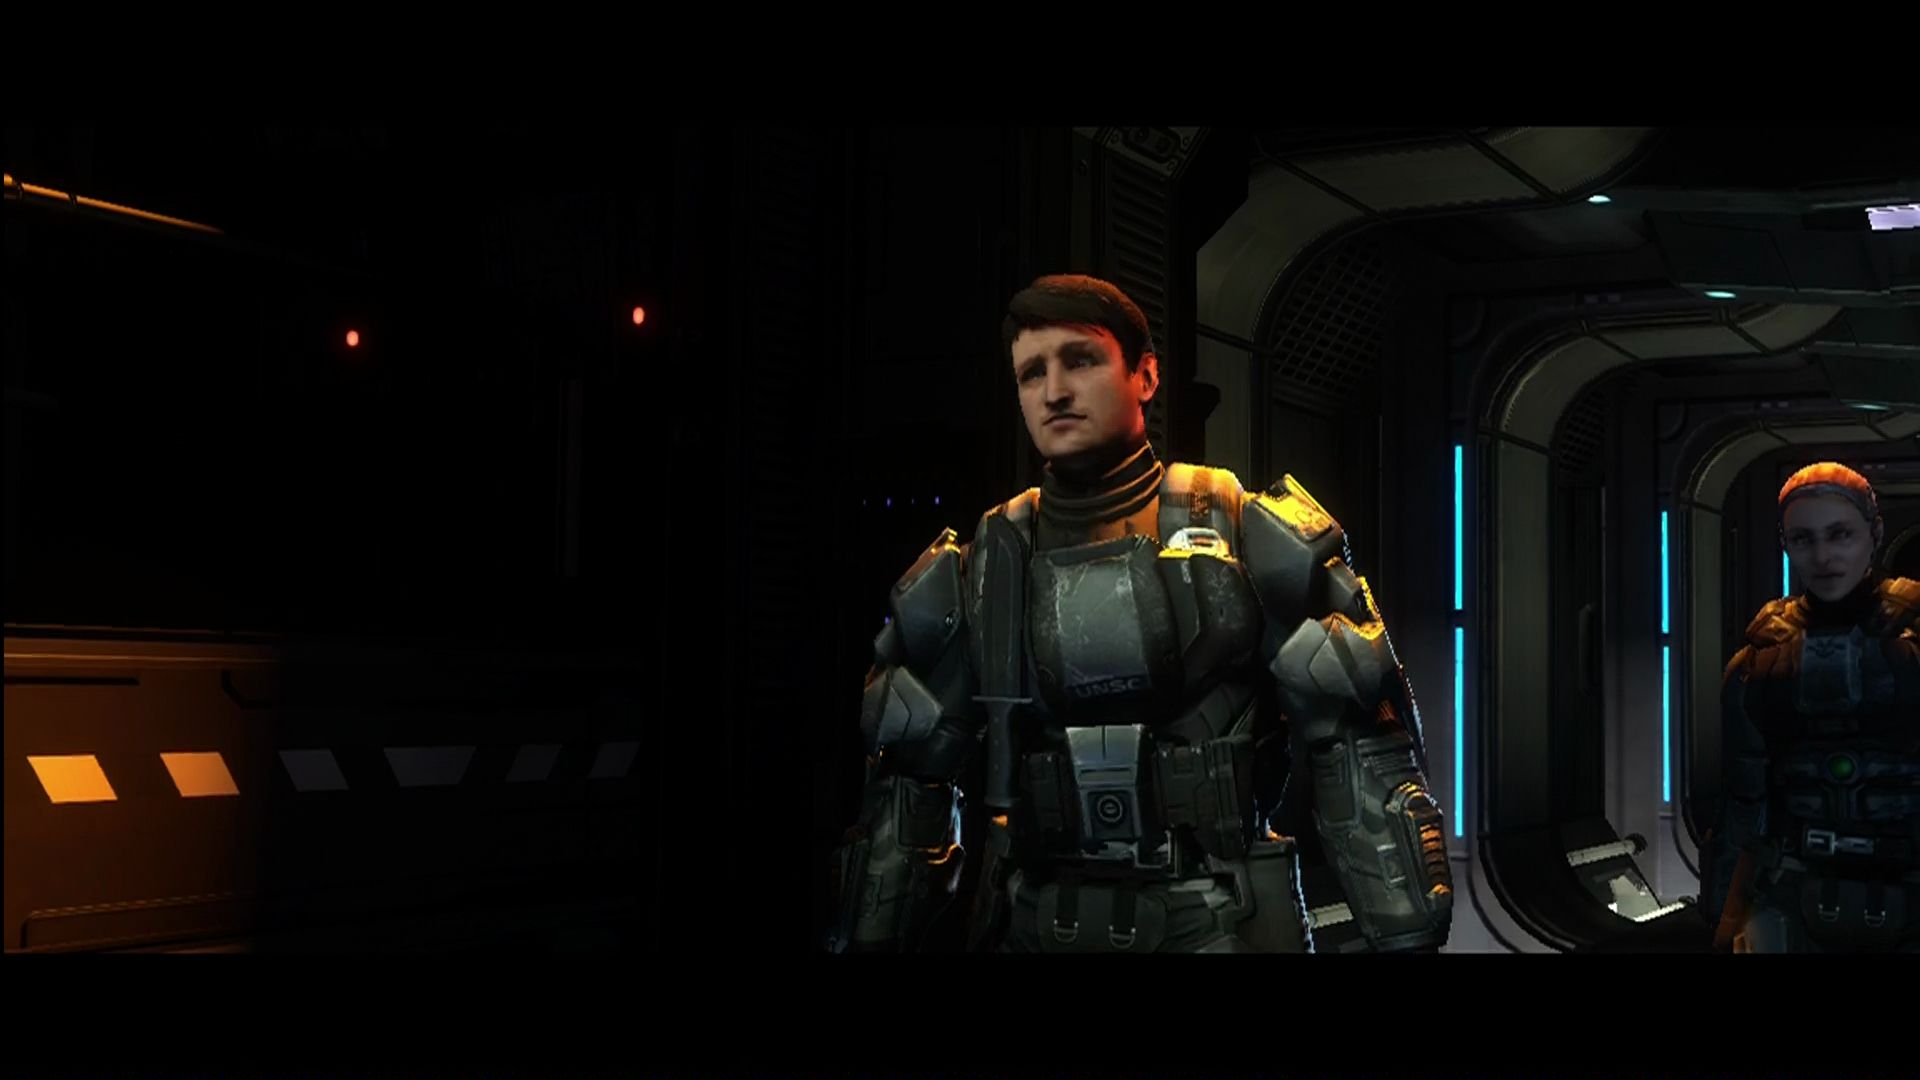 "Halo 3: ODST Xbox 360 <moby developer=""Nathan Fillion"">Nathan Fillion</moby> as... the same character he always plays."